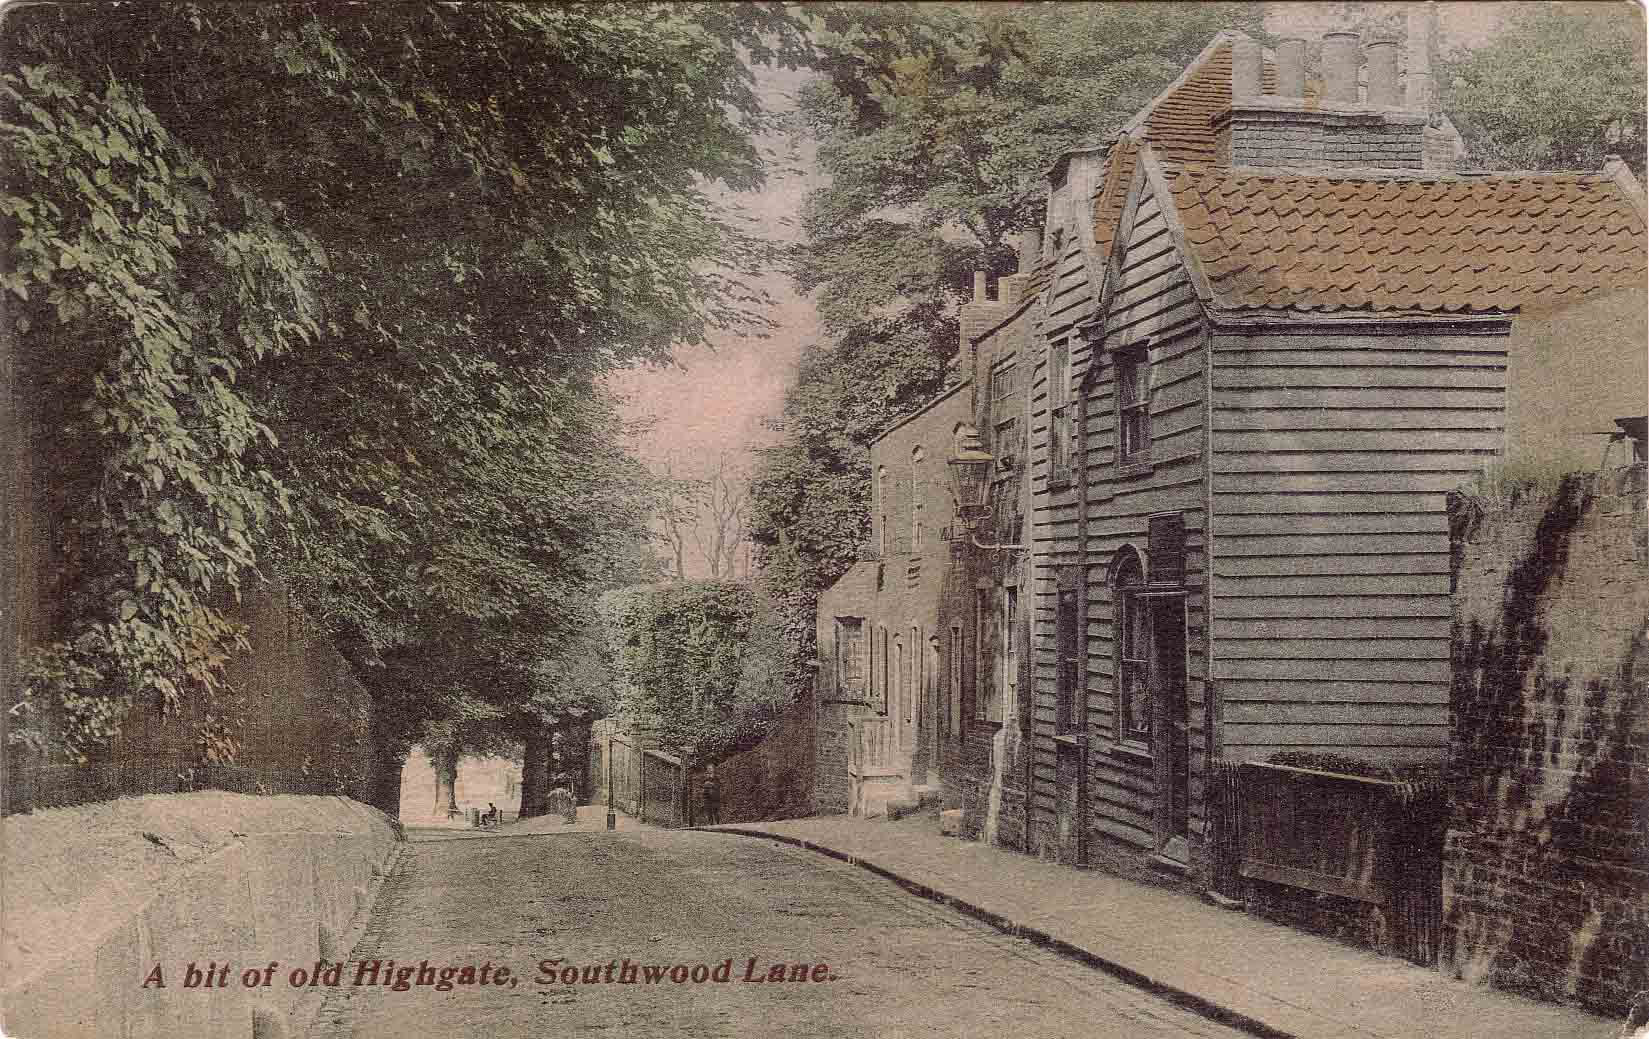 Postcard of Lower part of Southwood Lane, Highgate